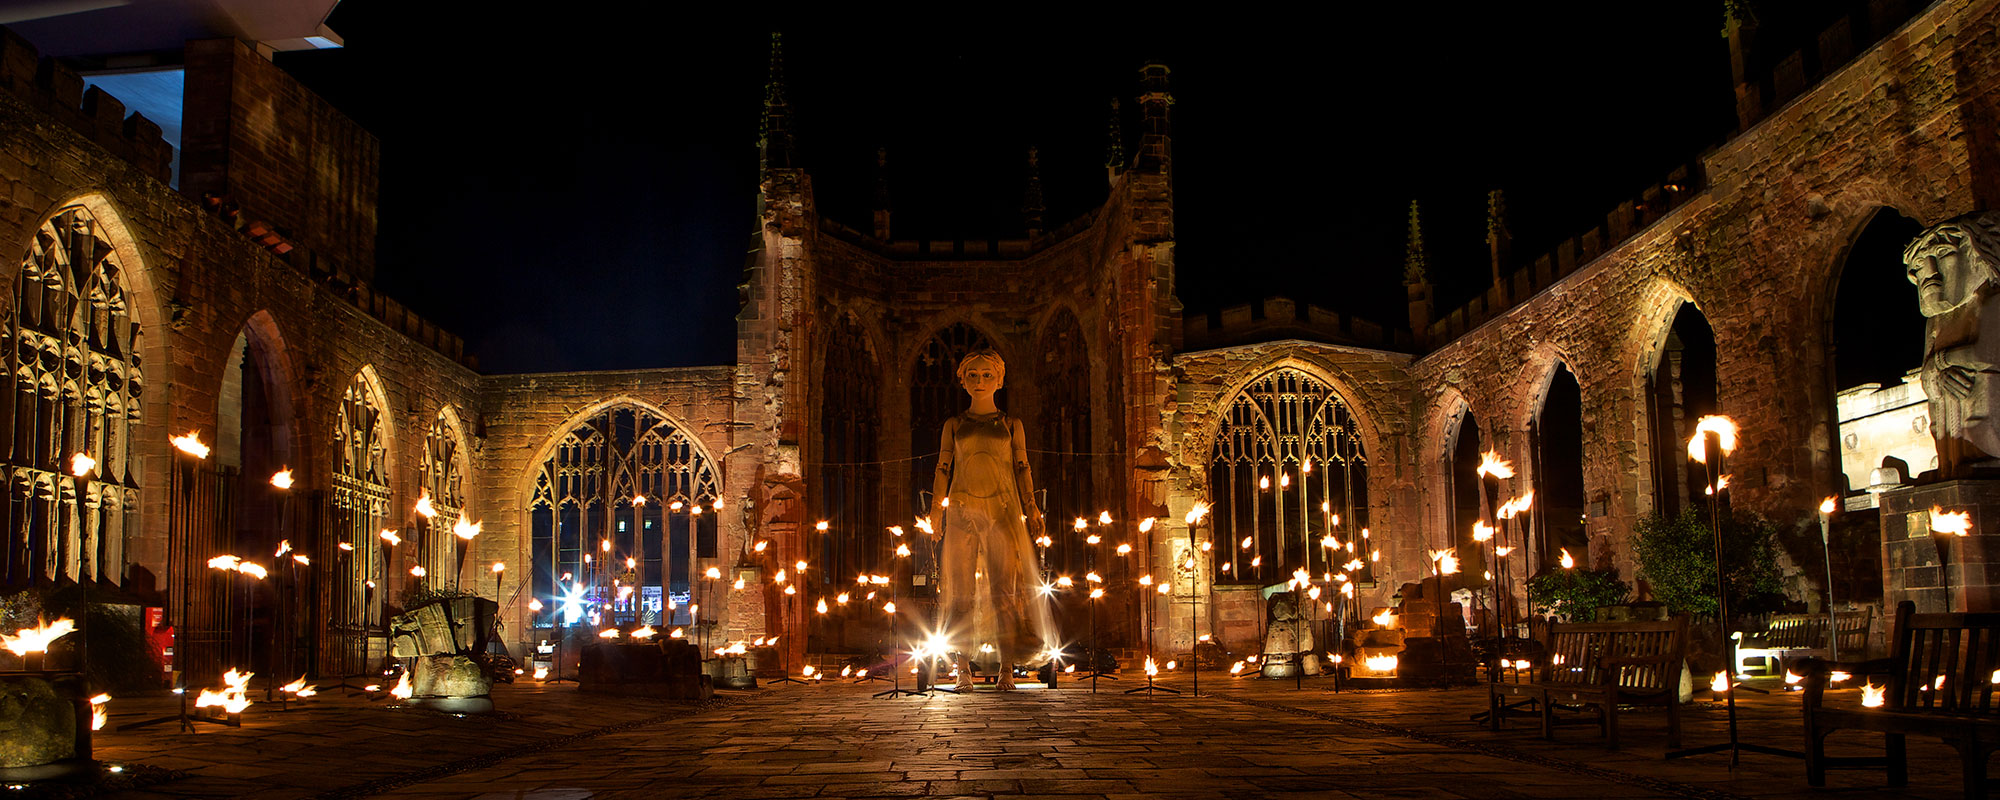 'Godiva Awakes' will play an important part in Coventry's 2021 UK City of Culture events